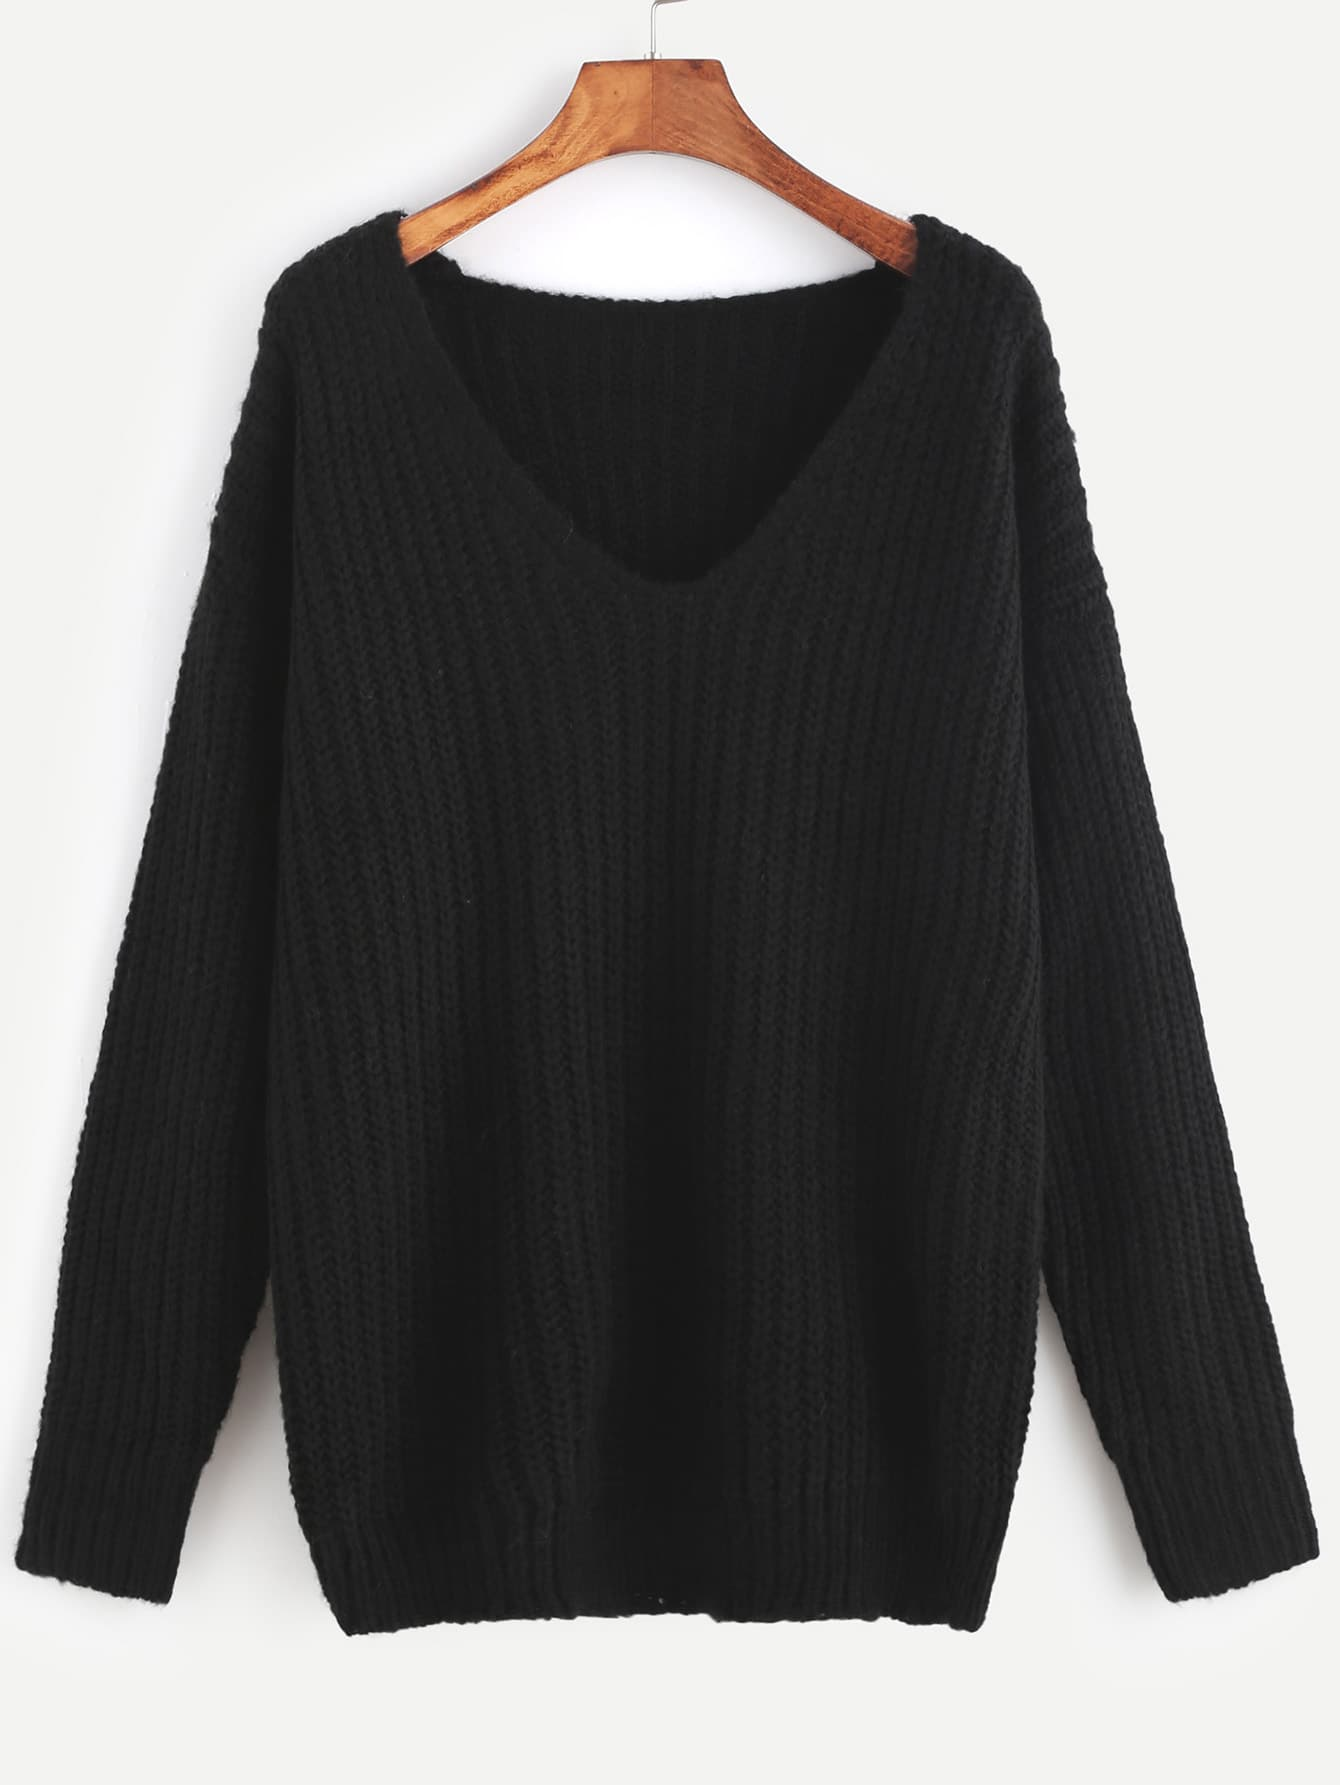 Black Ribbed Knit V Neck Drop Shoulder SweaterBlack Ribbed Knit V Neck Drop Shoulder Sweater<br><br>color: Black<br>size: one-size